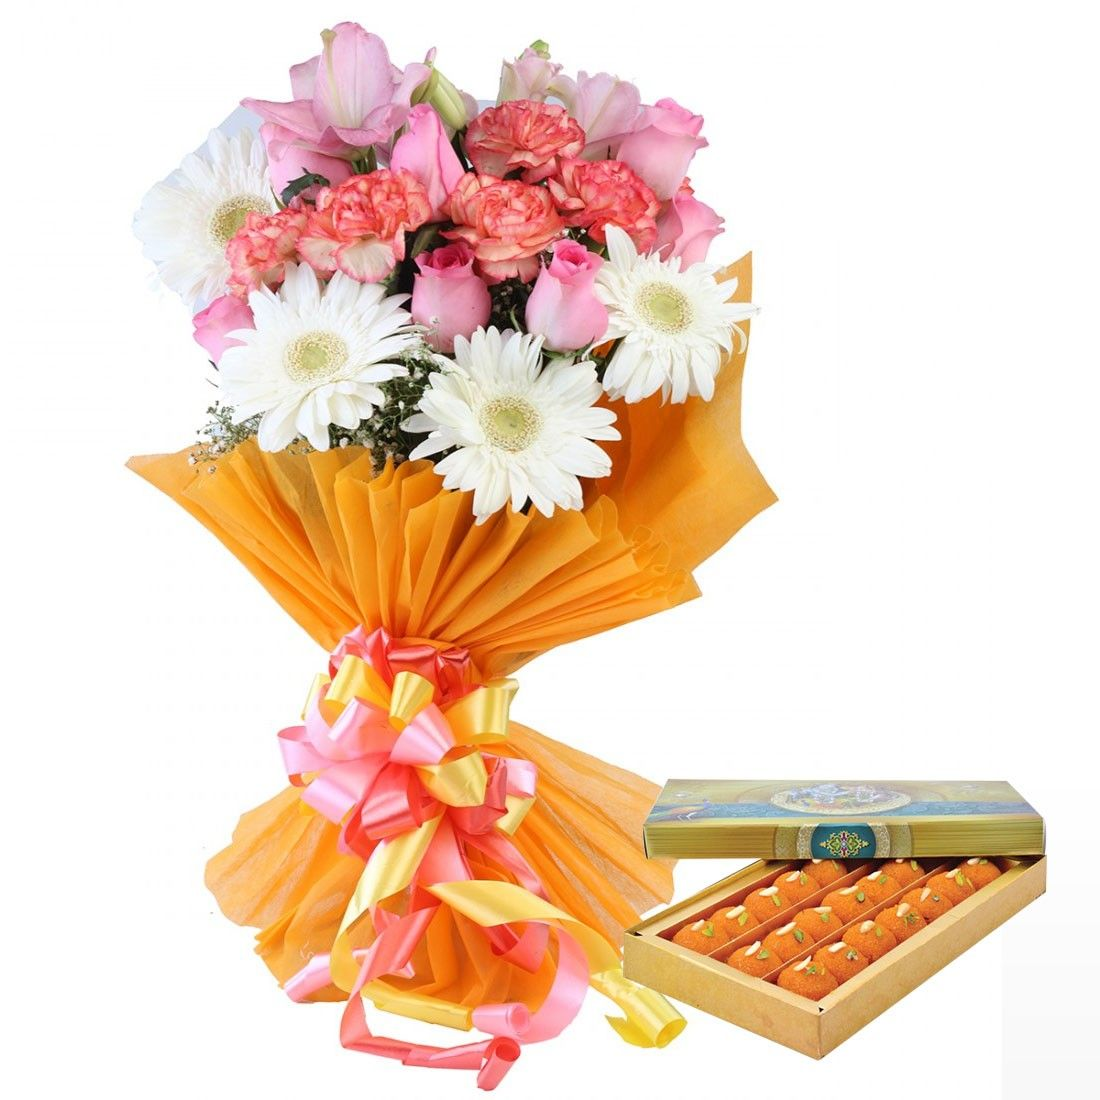 Bouquet Of 15 Mix Flowers 3 Gerberas 5 Carnations 7 Roses With Sweets Same Day Delivery Gifts Buy Bouquet Carnations Same Day Delivery Gifts